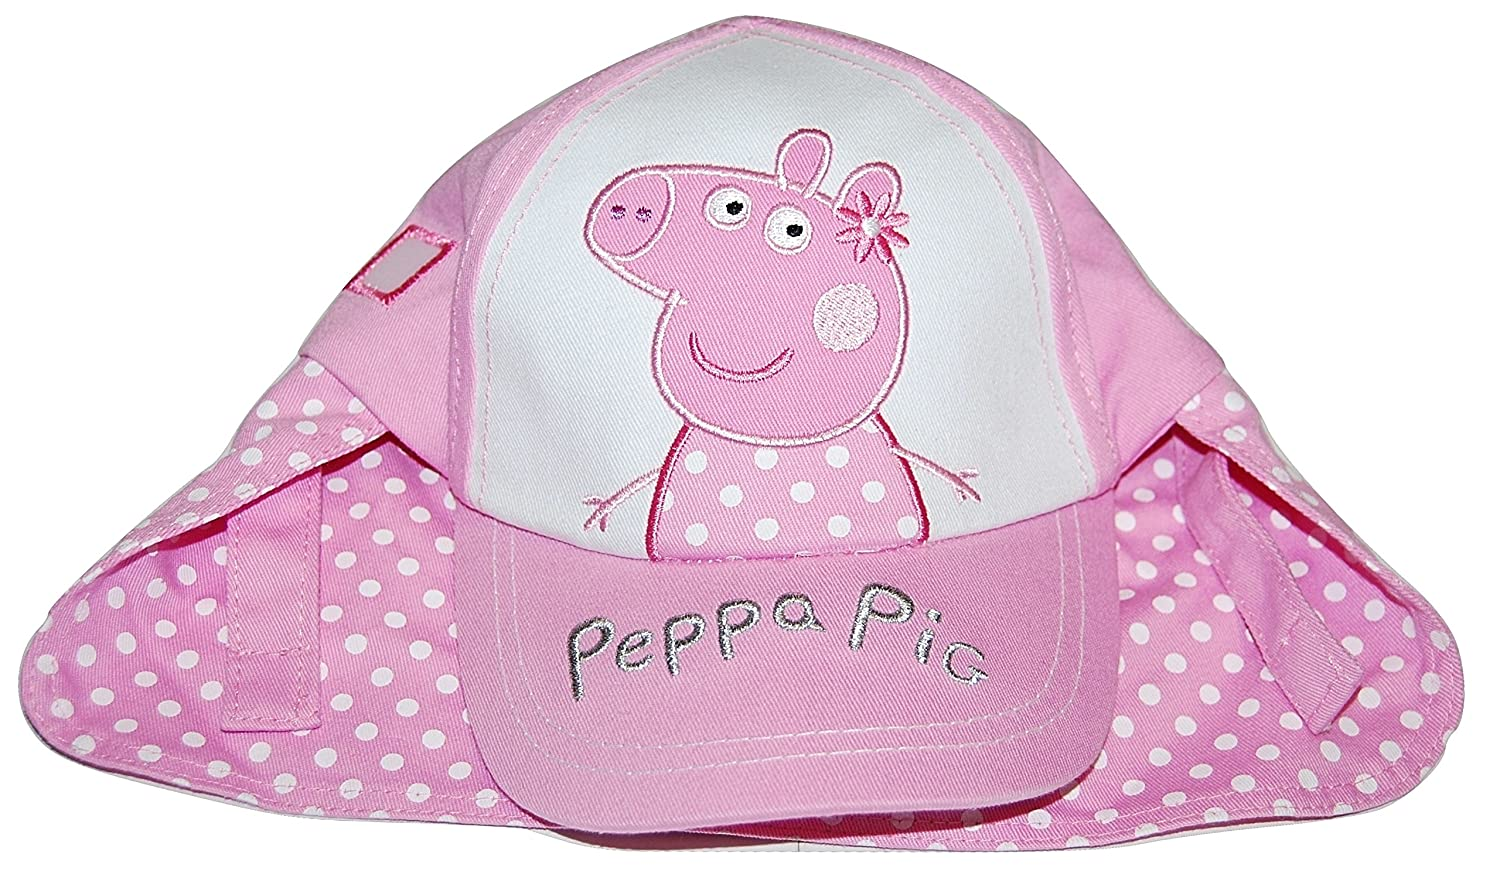 05f9566e303 Girls Peppa Pig Legionnaires Summer Sun Hat Cap 12-23 Months 2-4 Years (2-4  Years)  Amazon.co.uk  Clothing